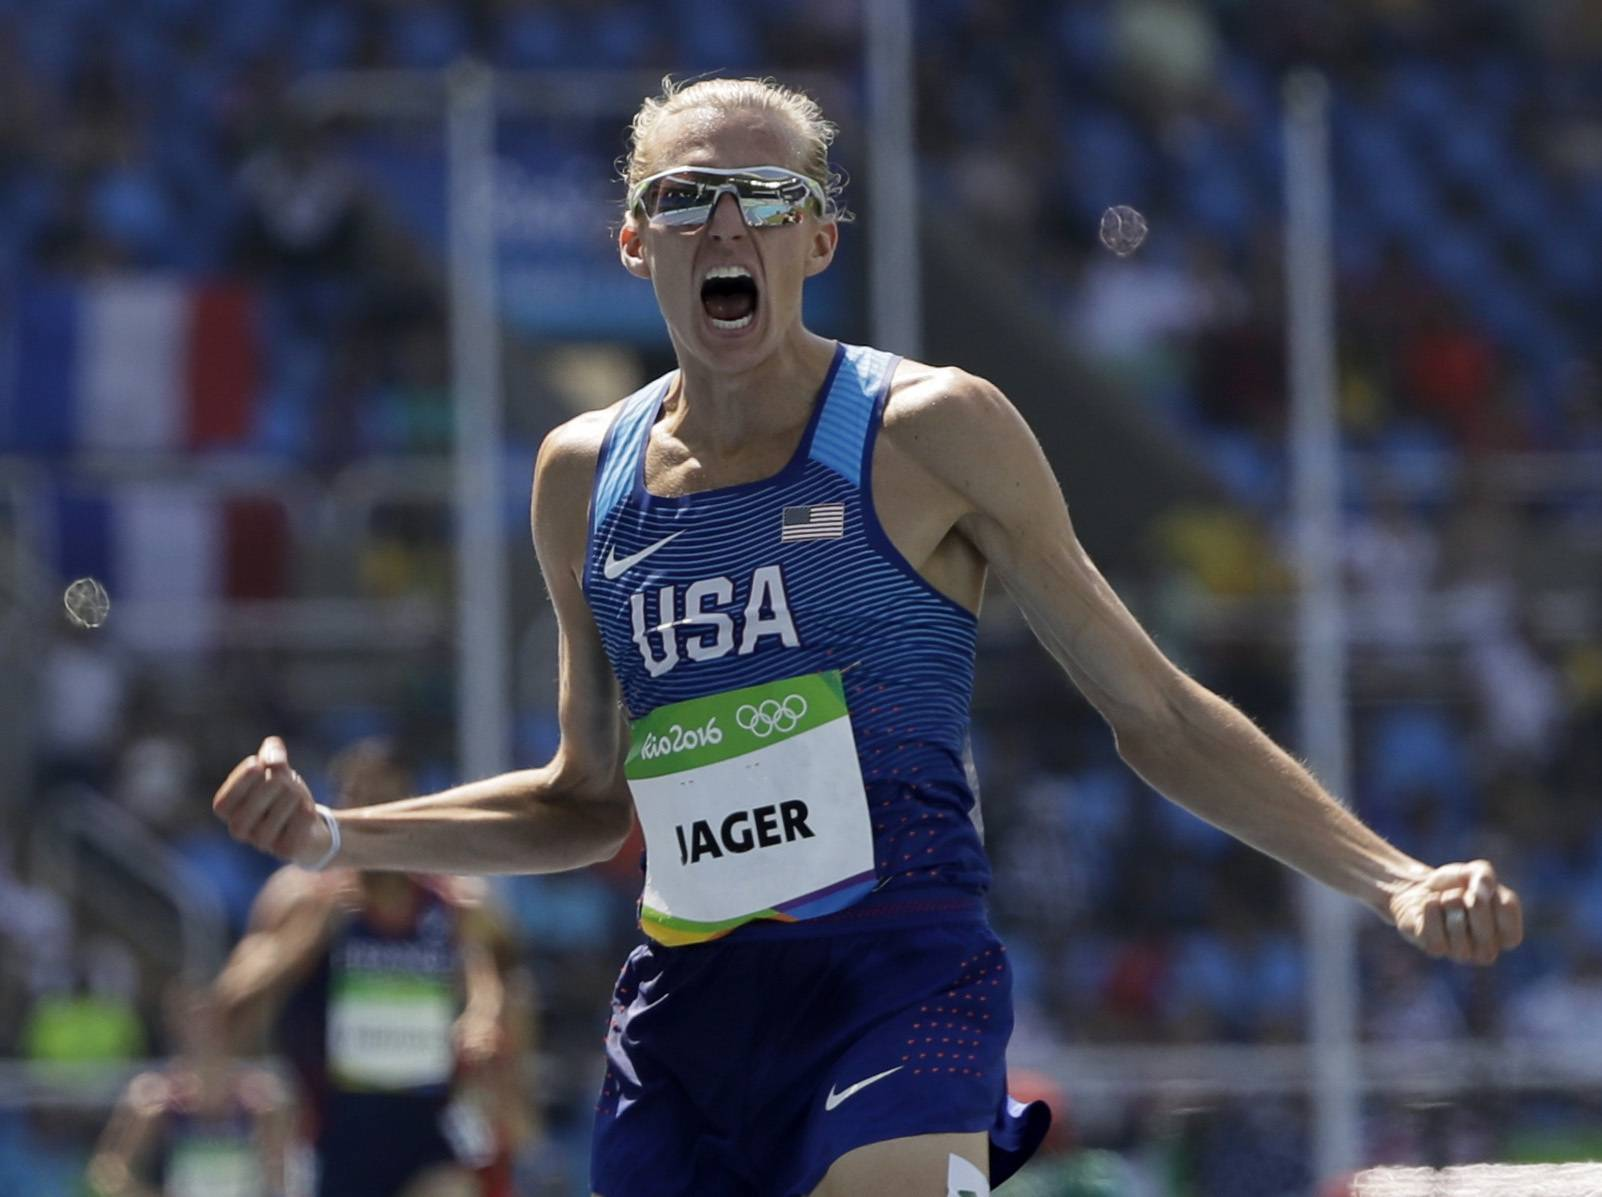 Olympic medalist Evan Jager to donate uniform to Jacobs High School